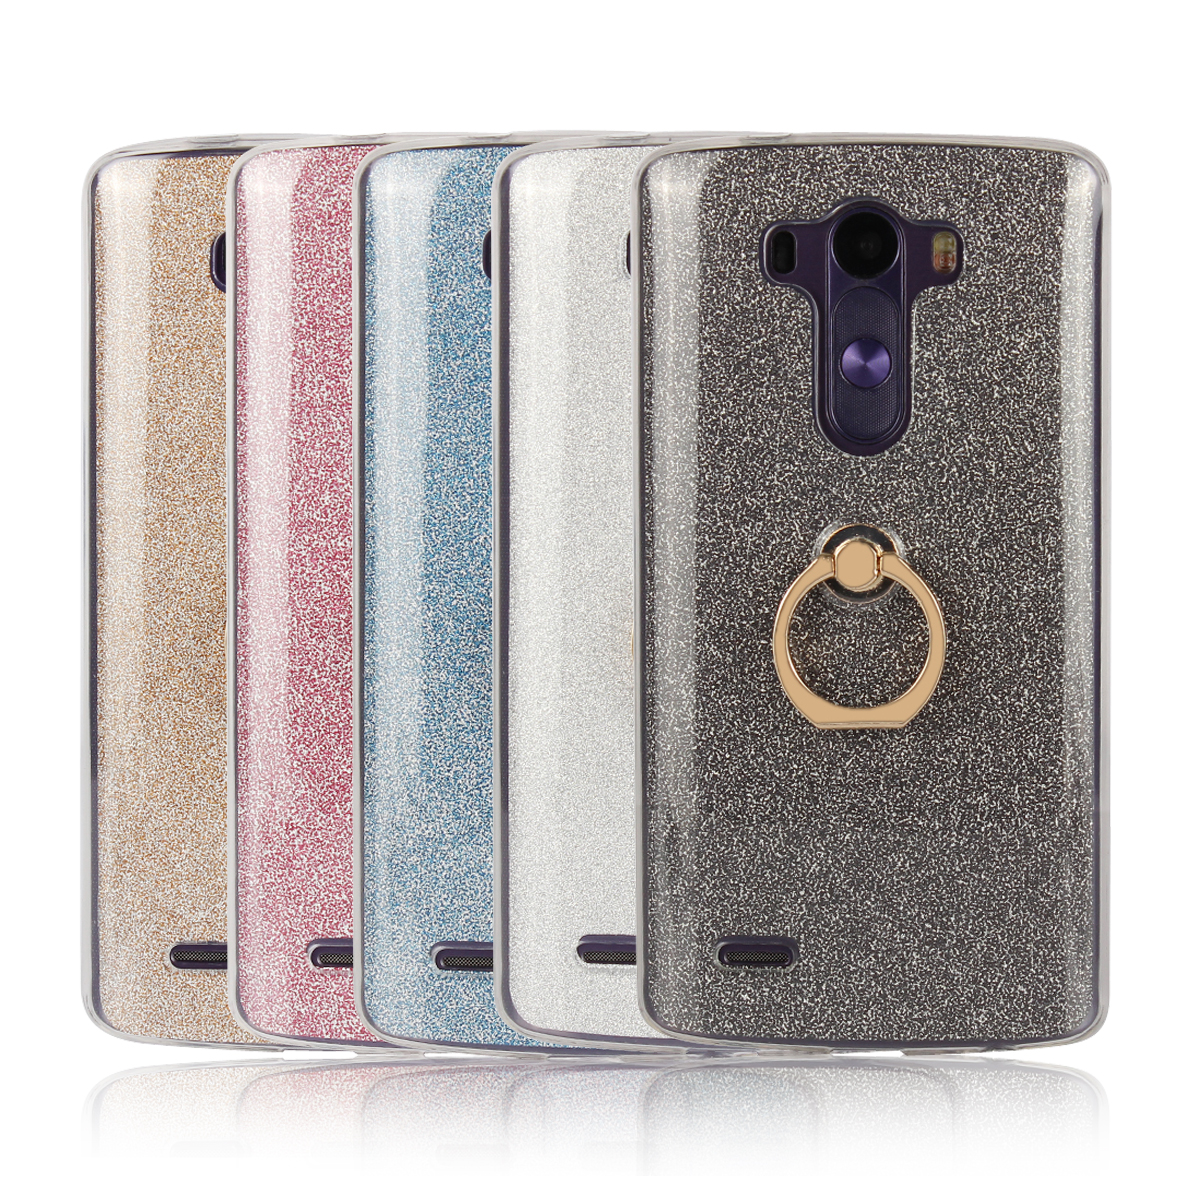 US $4 5 9% OFF|Case for LG G3 Flash powder Case for LG G3 D855 D850 D851  D852 AS990 US990 D859 VS985 D858HK D856 Finger buckle Soft shell cover-in